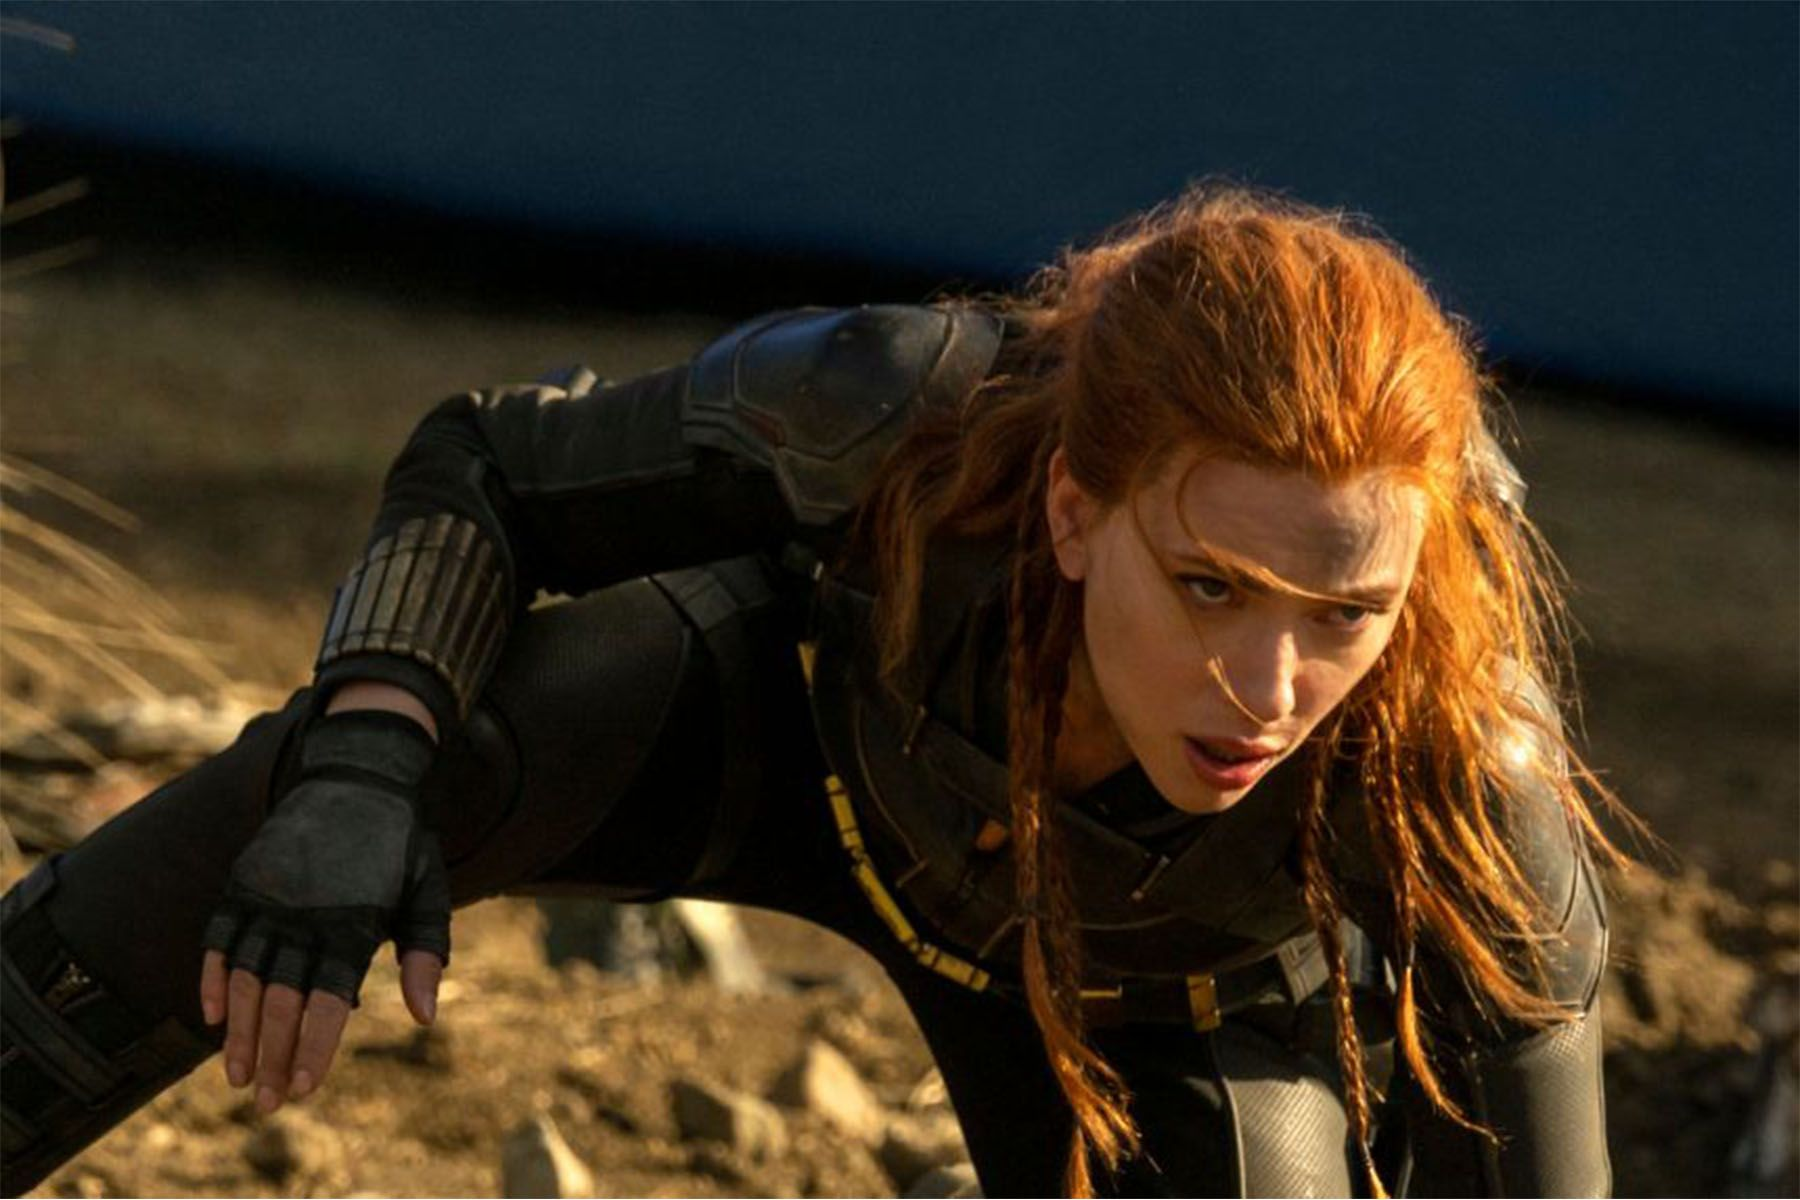 I Hated The Marvel Universe. So Why Did I Love Black Widow?